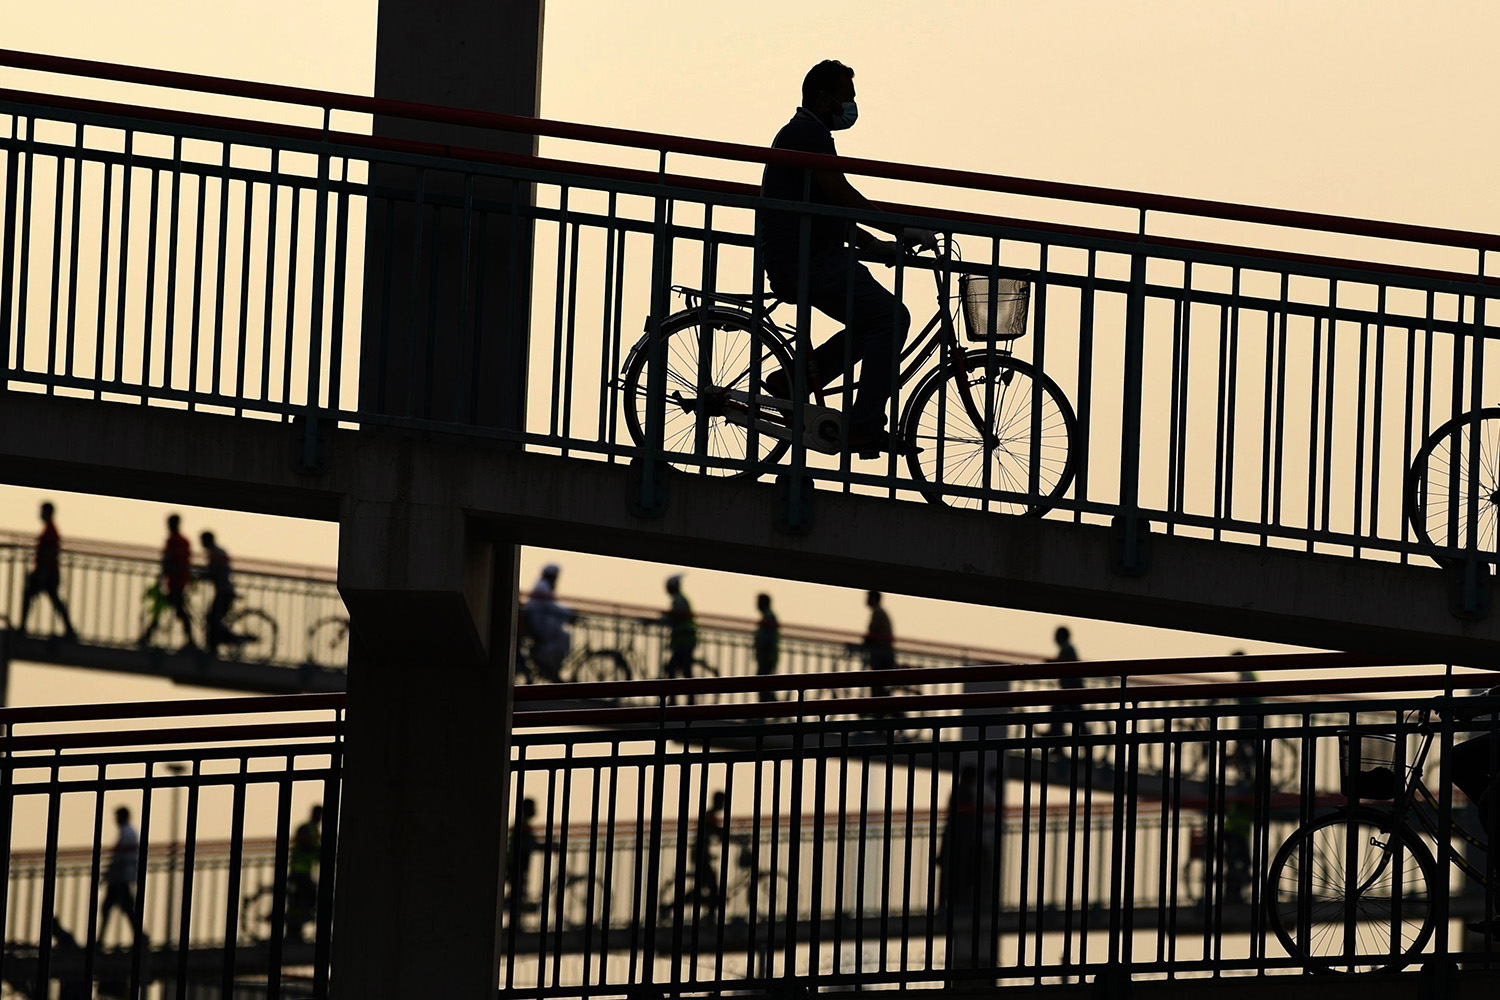 People walk or ride bicycles over a bridge in the Emirati city of Dubai on April 2. KARIM SAHIB/AFP via Getty Images